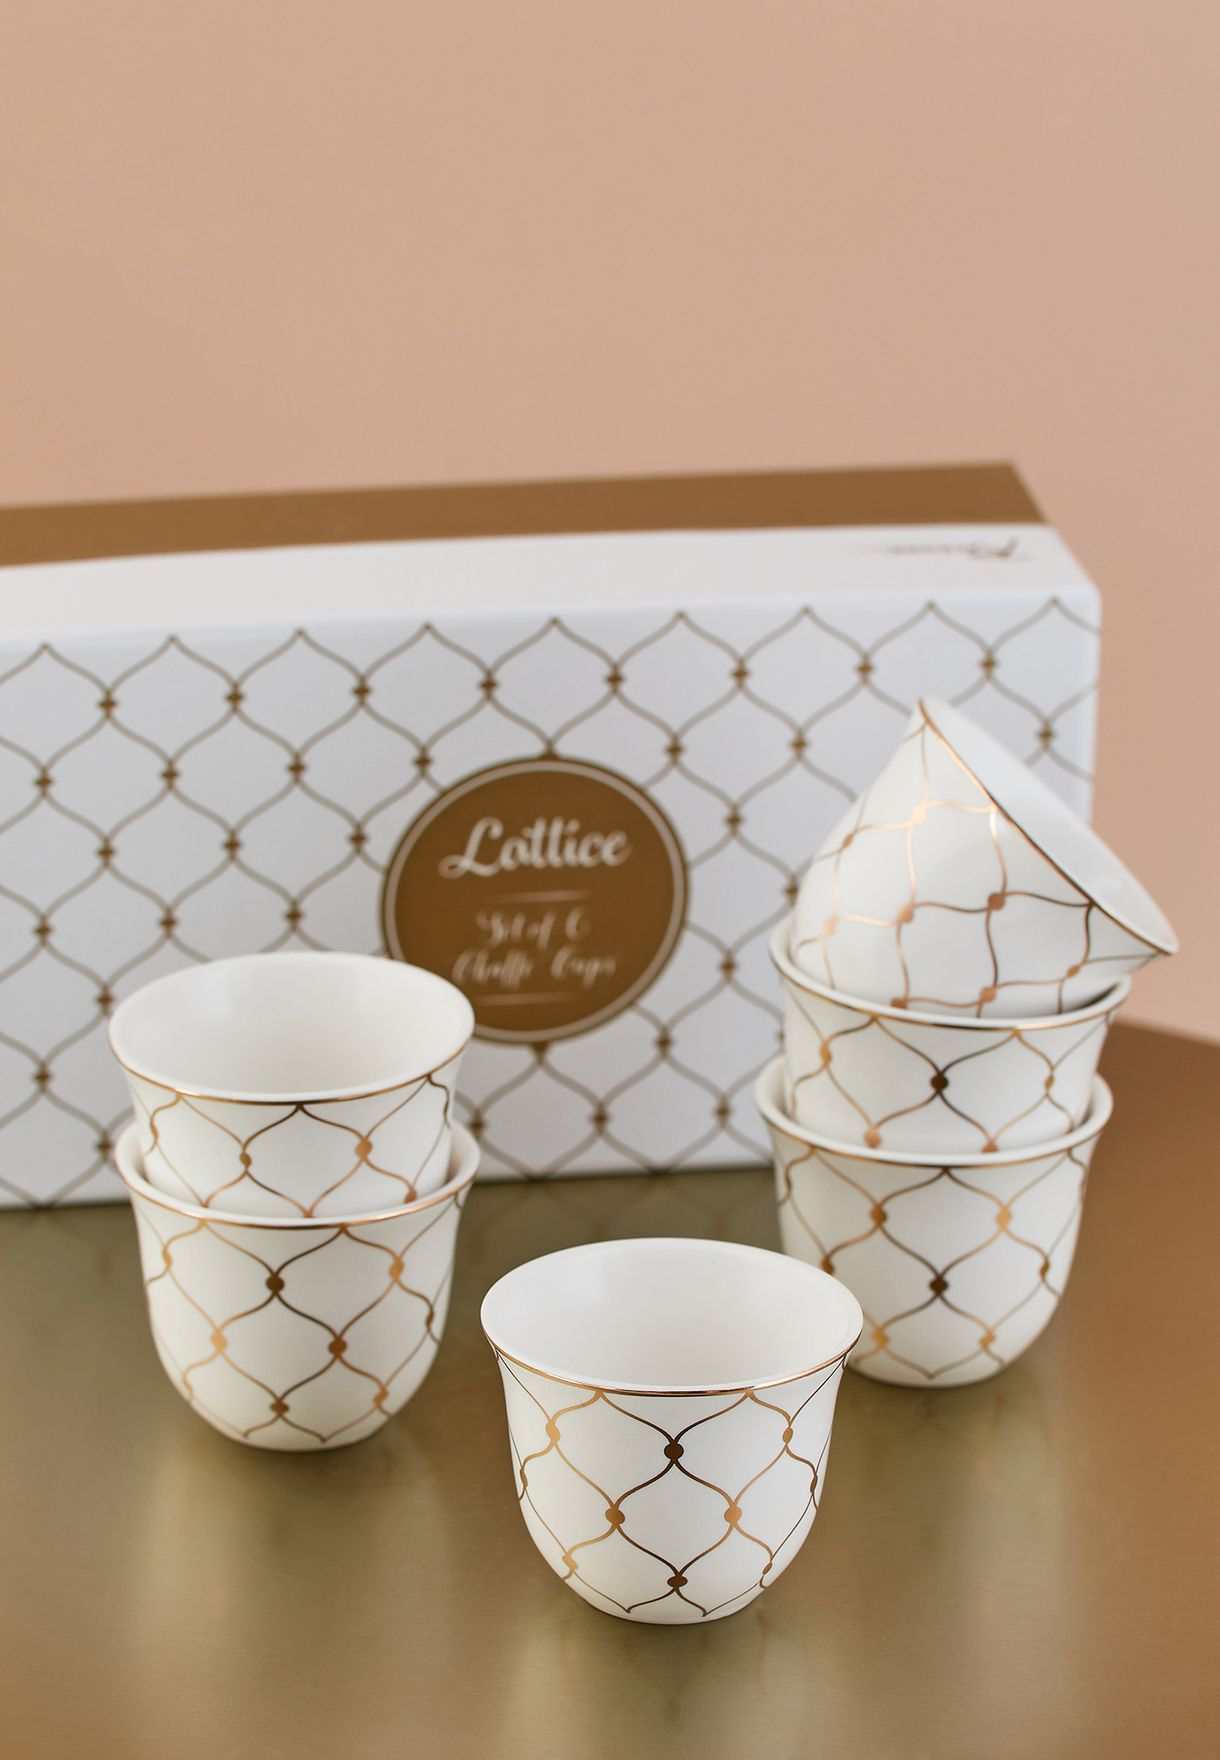 6 Pack Chaffe Cups